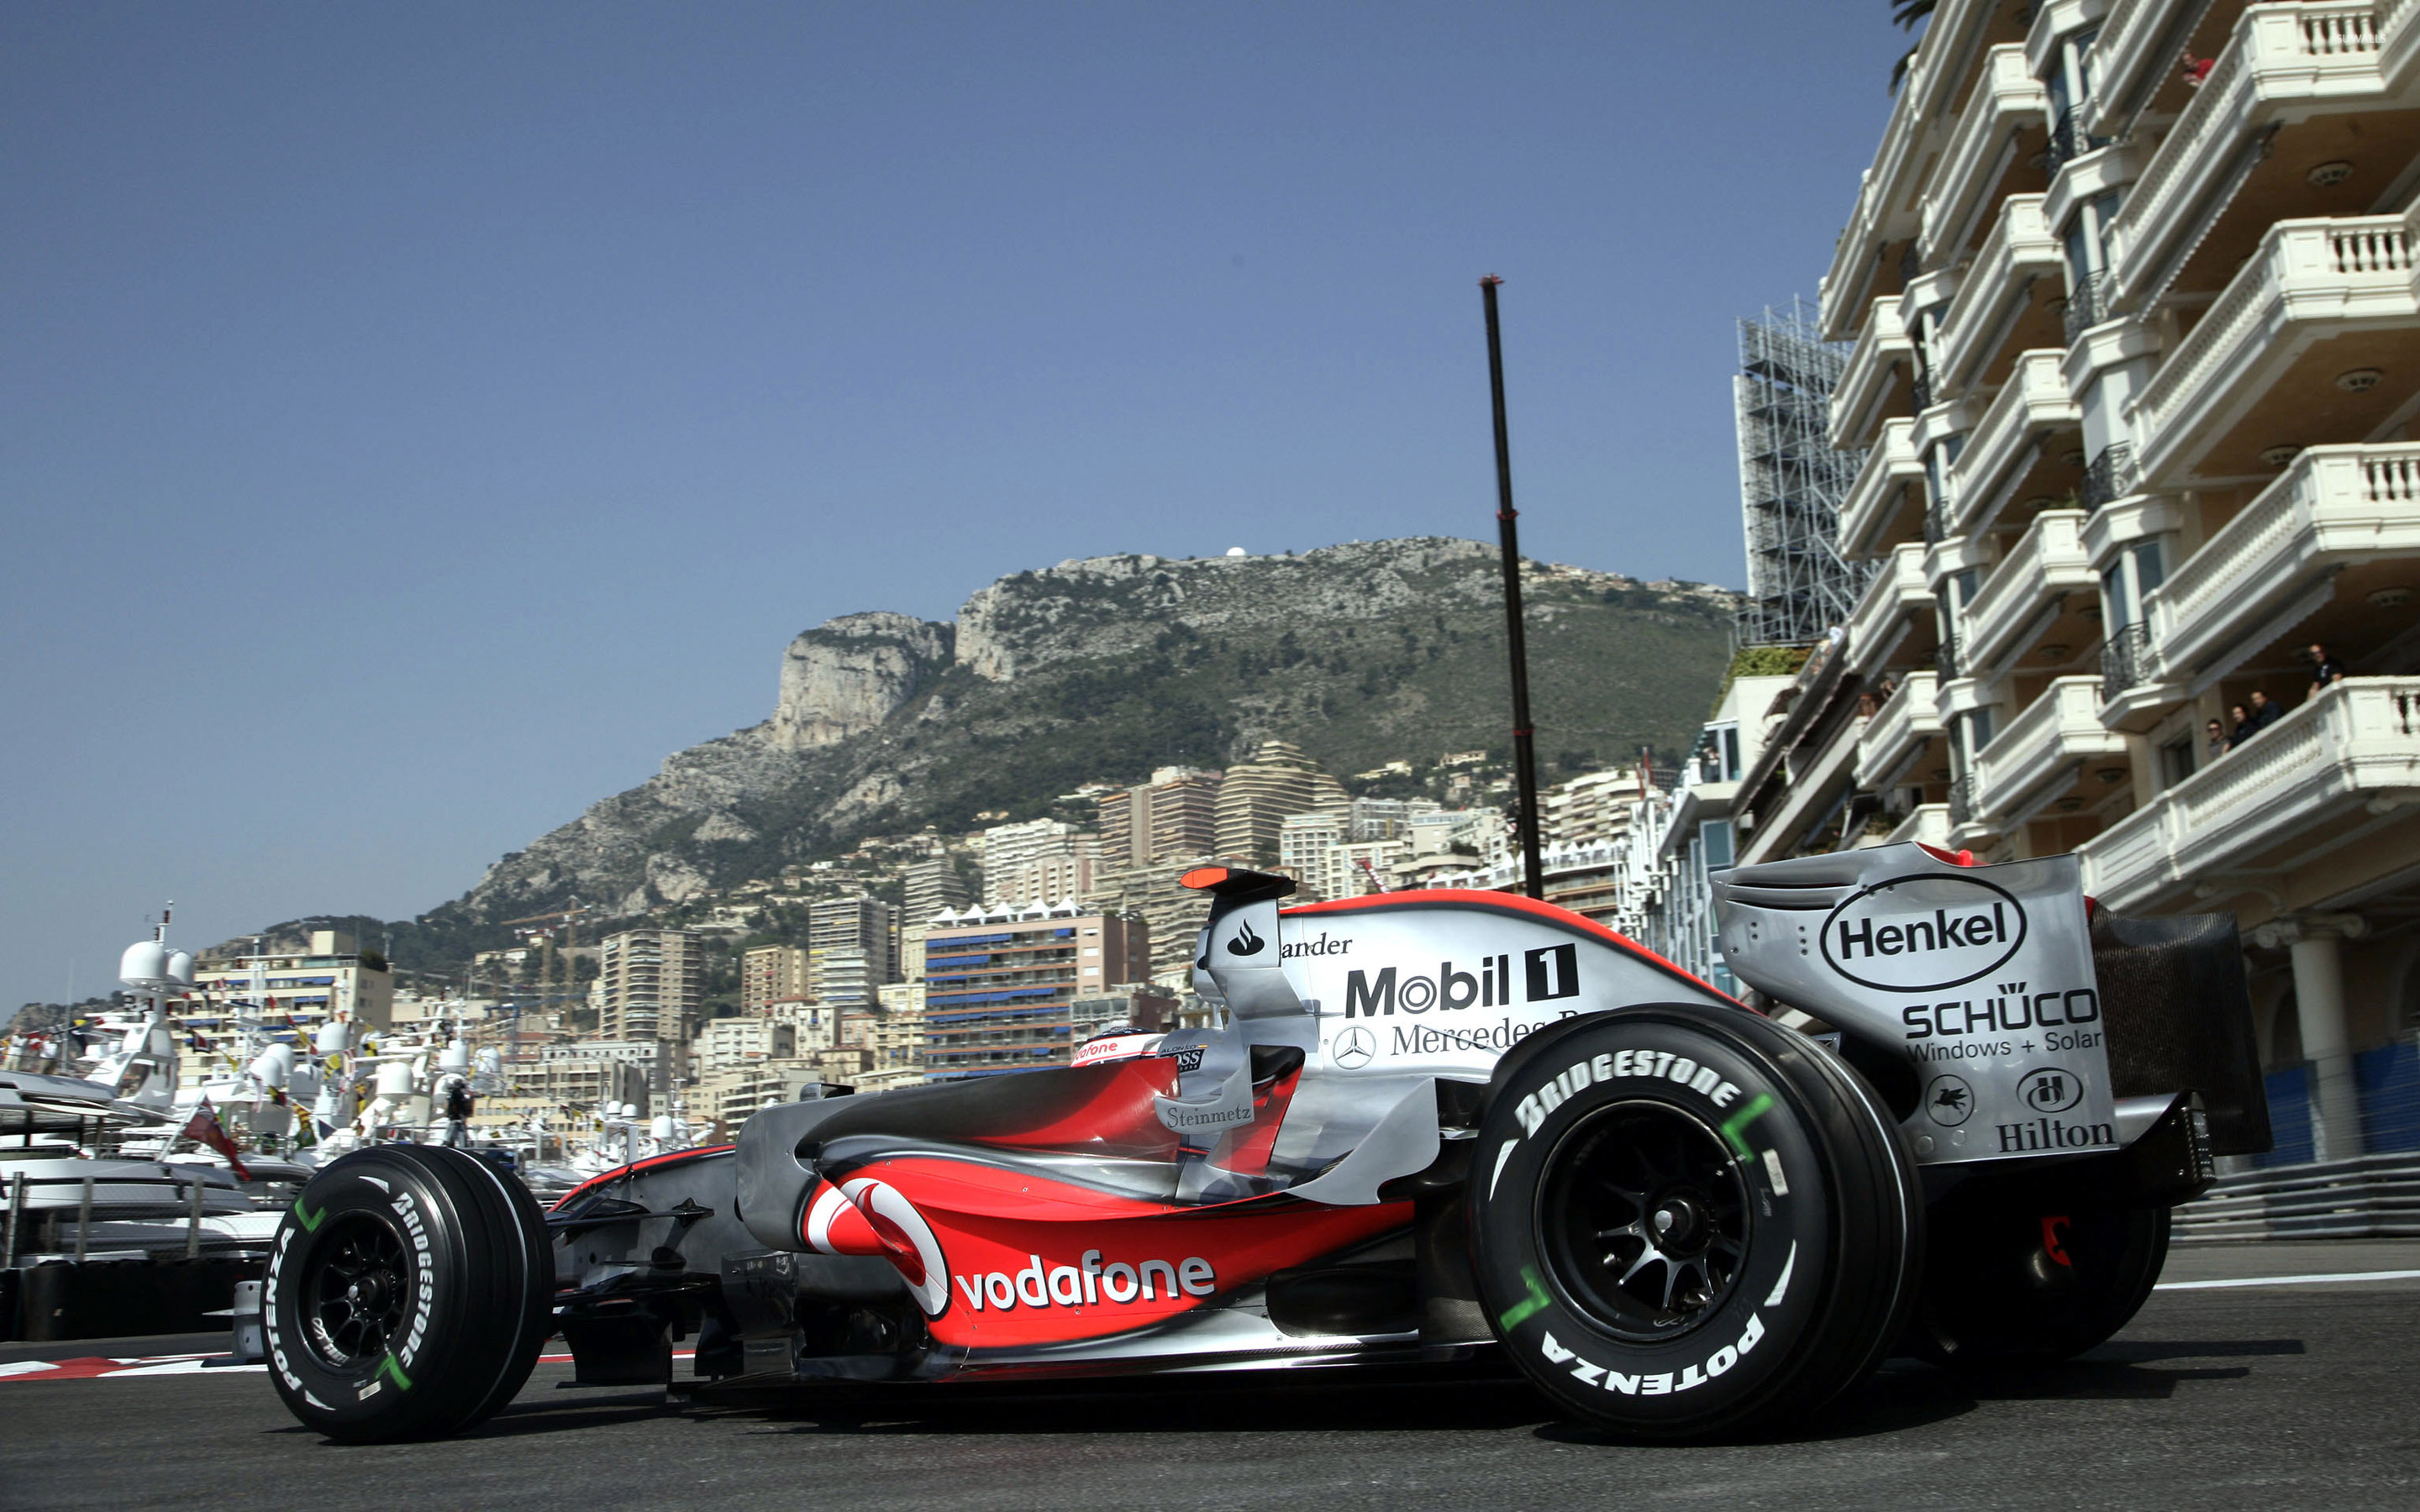 F1 Monaco Wallpaper Car Wallpapers 30253